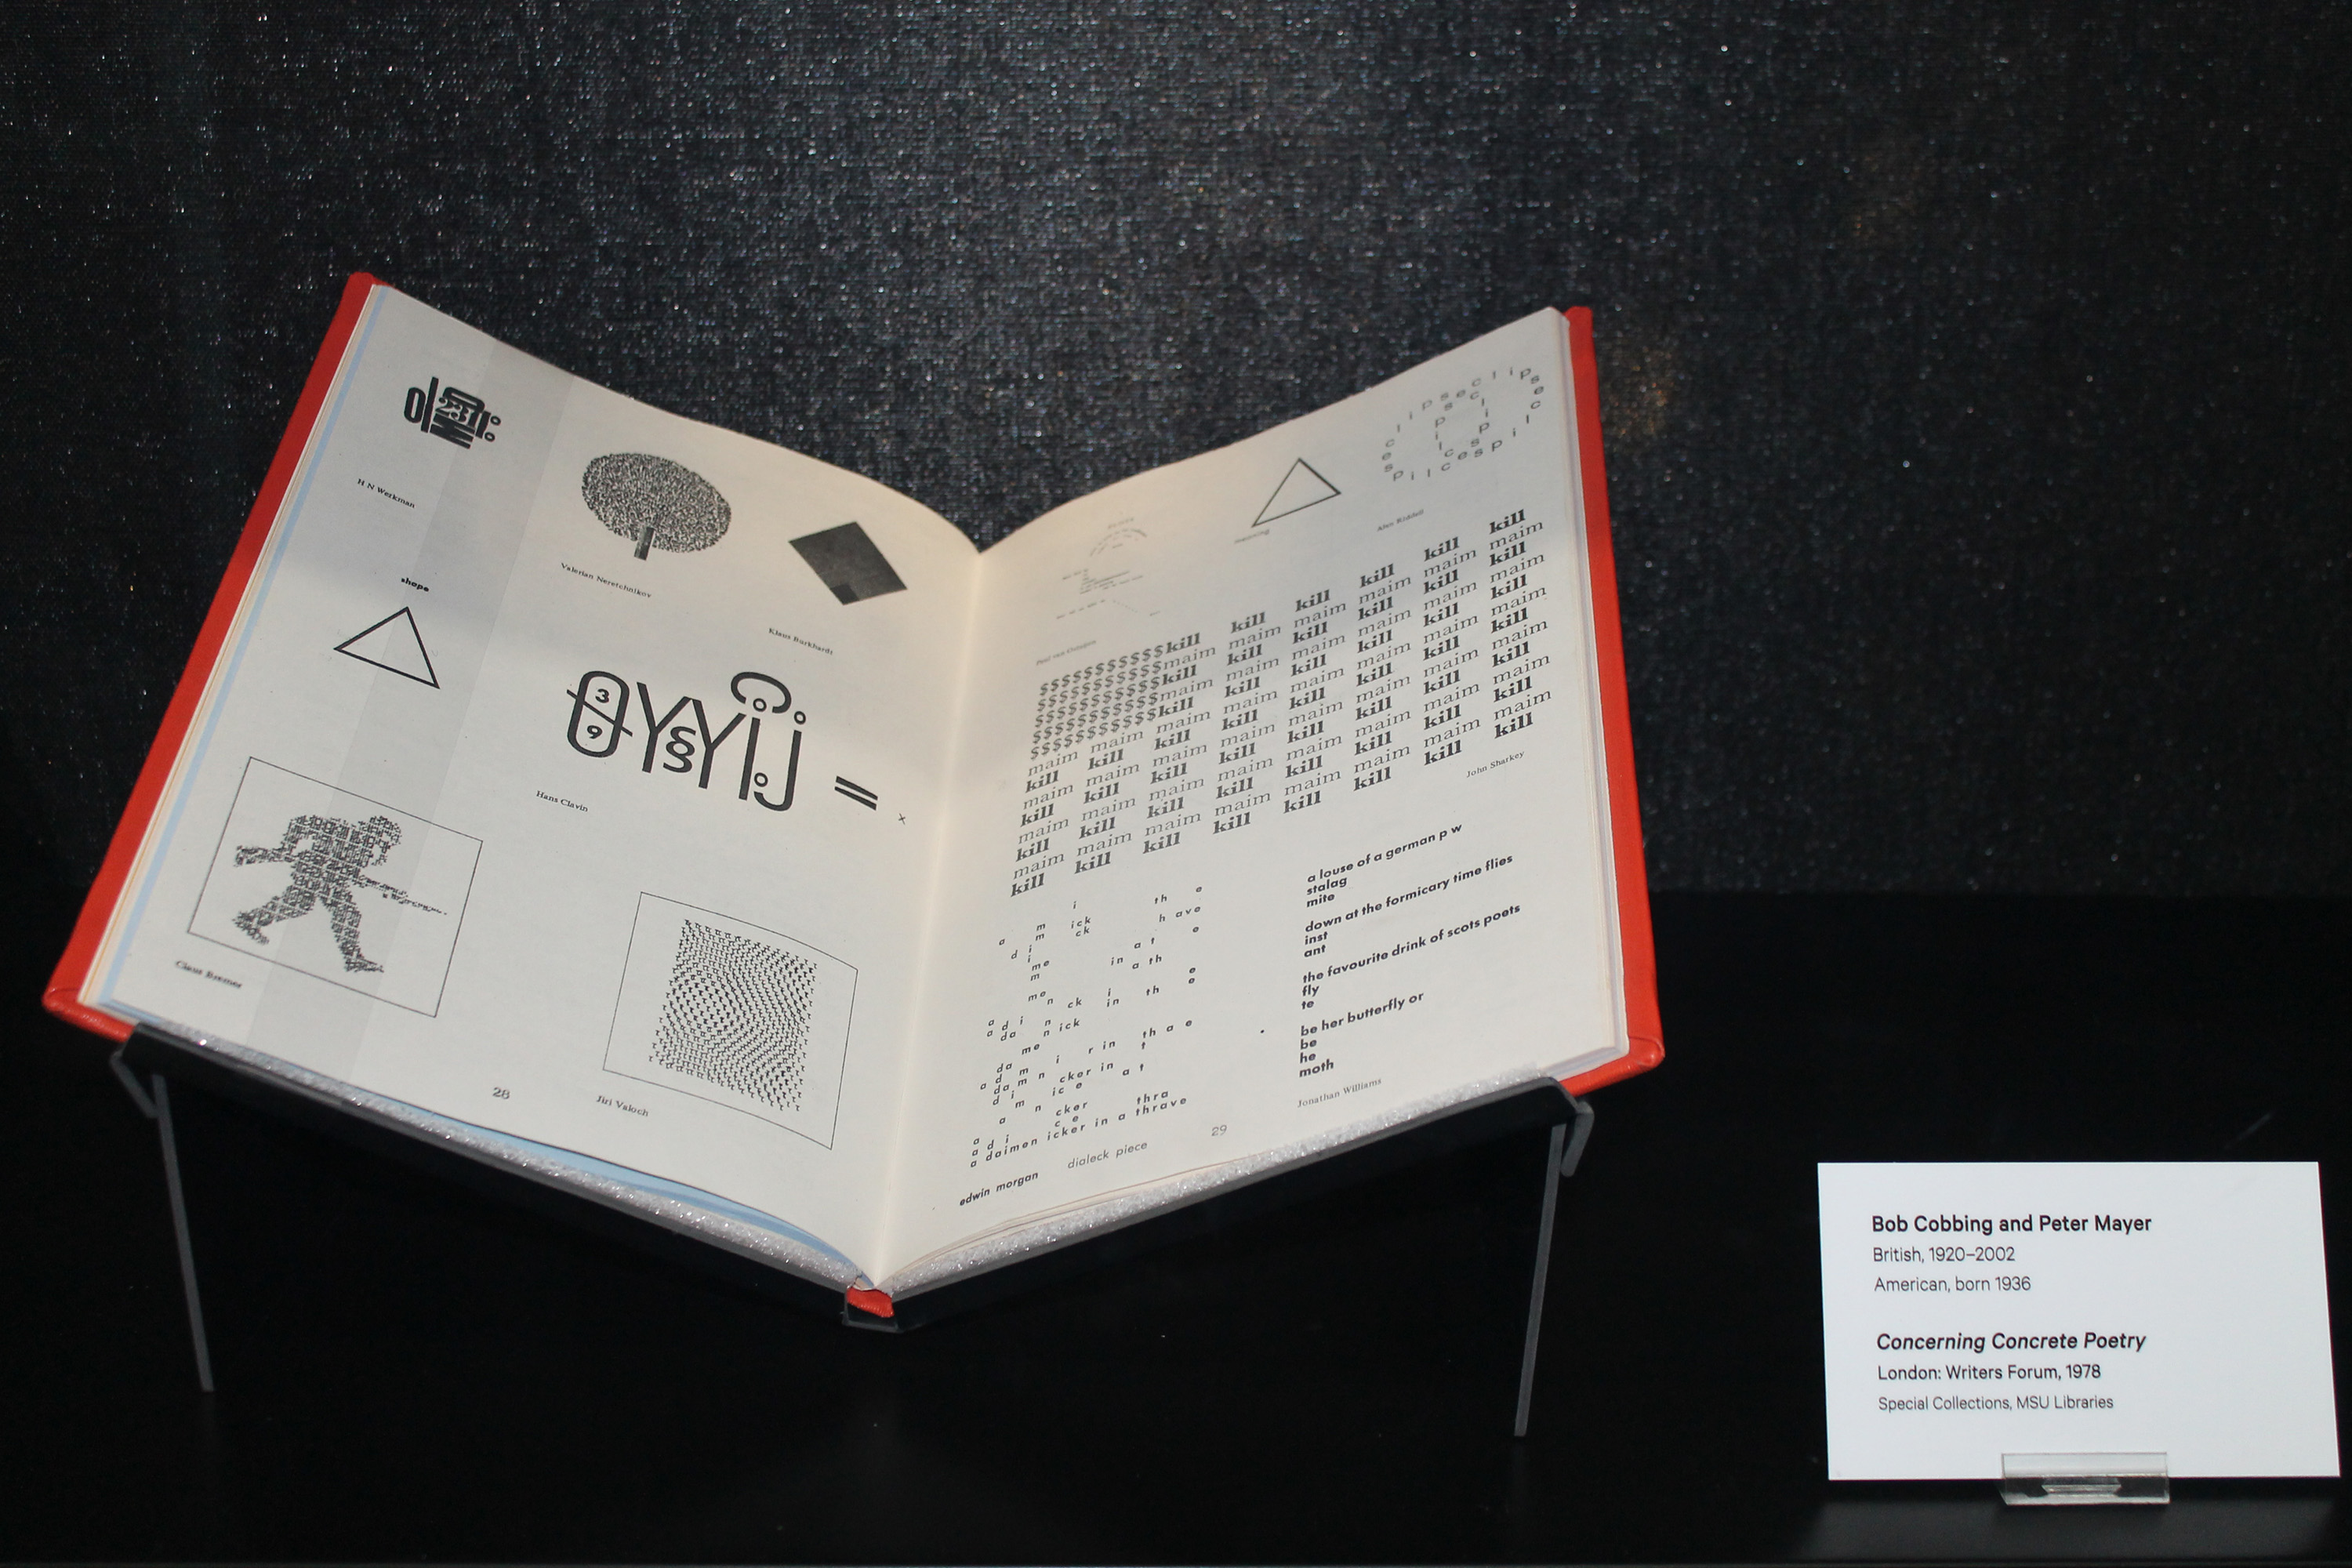 Bob Cobbing and Peter Mayer, <i>Concerning Concrete Poetry</i>, London: Writers Forum, 1978, installation view at the Eli and Edythe Broad Art Museum at Michigan State University, 2014. Special Collections, MSU Libraries. Photo: MSU Broad